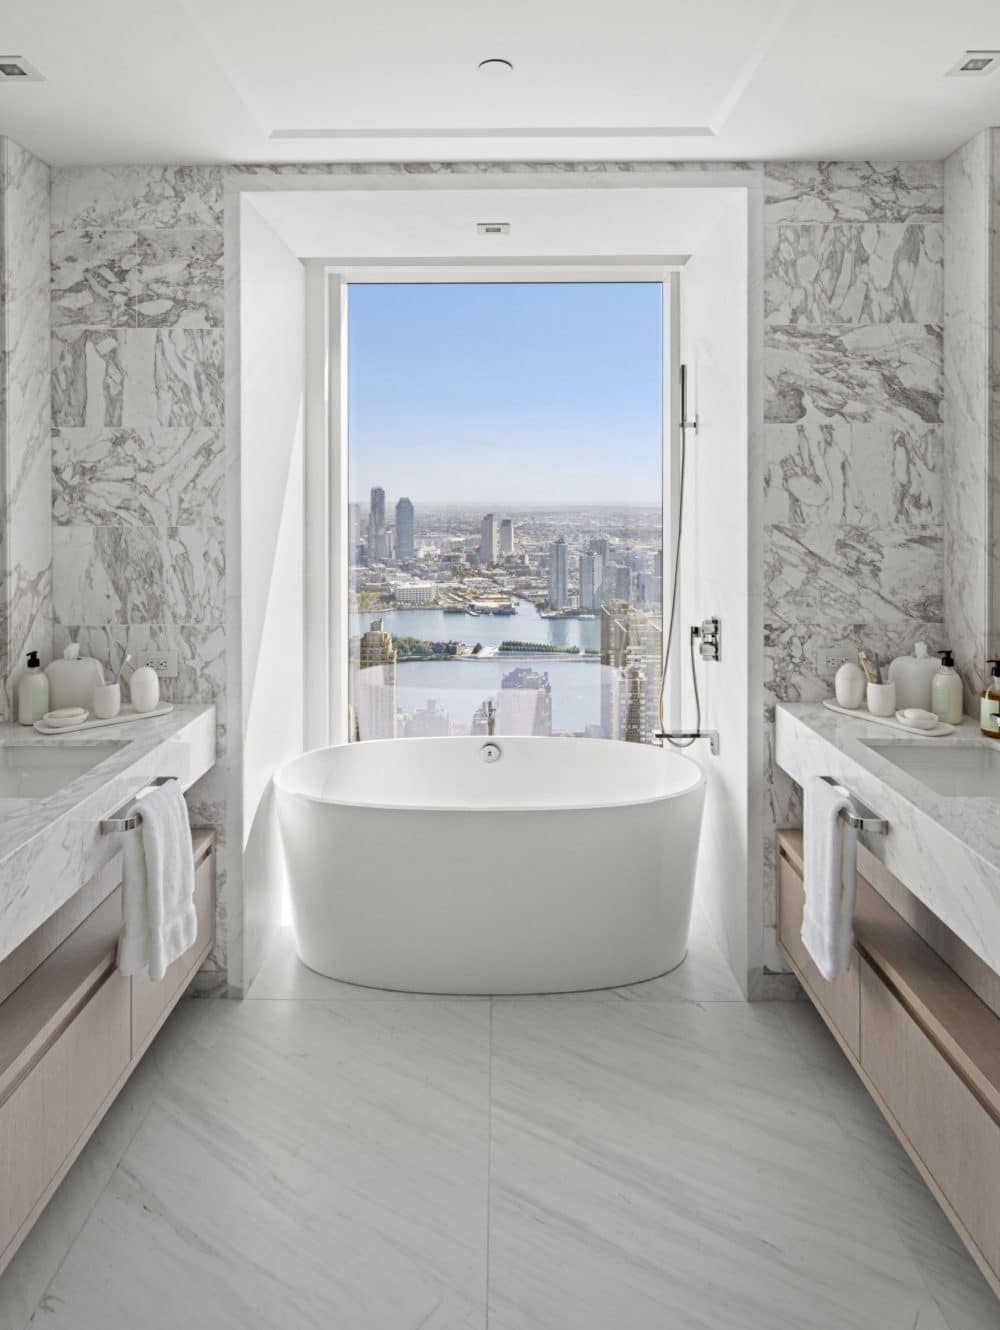 Bathroom at The Centrale in New York. Condo bathroom with double vanities and large soaking tub overlooking Manhattan.